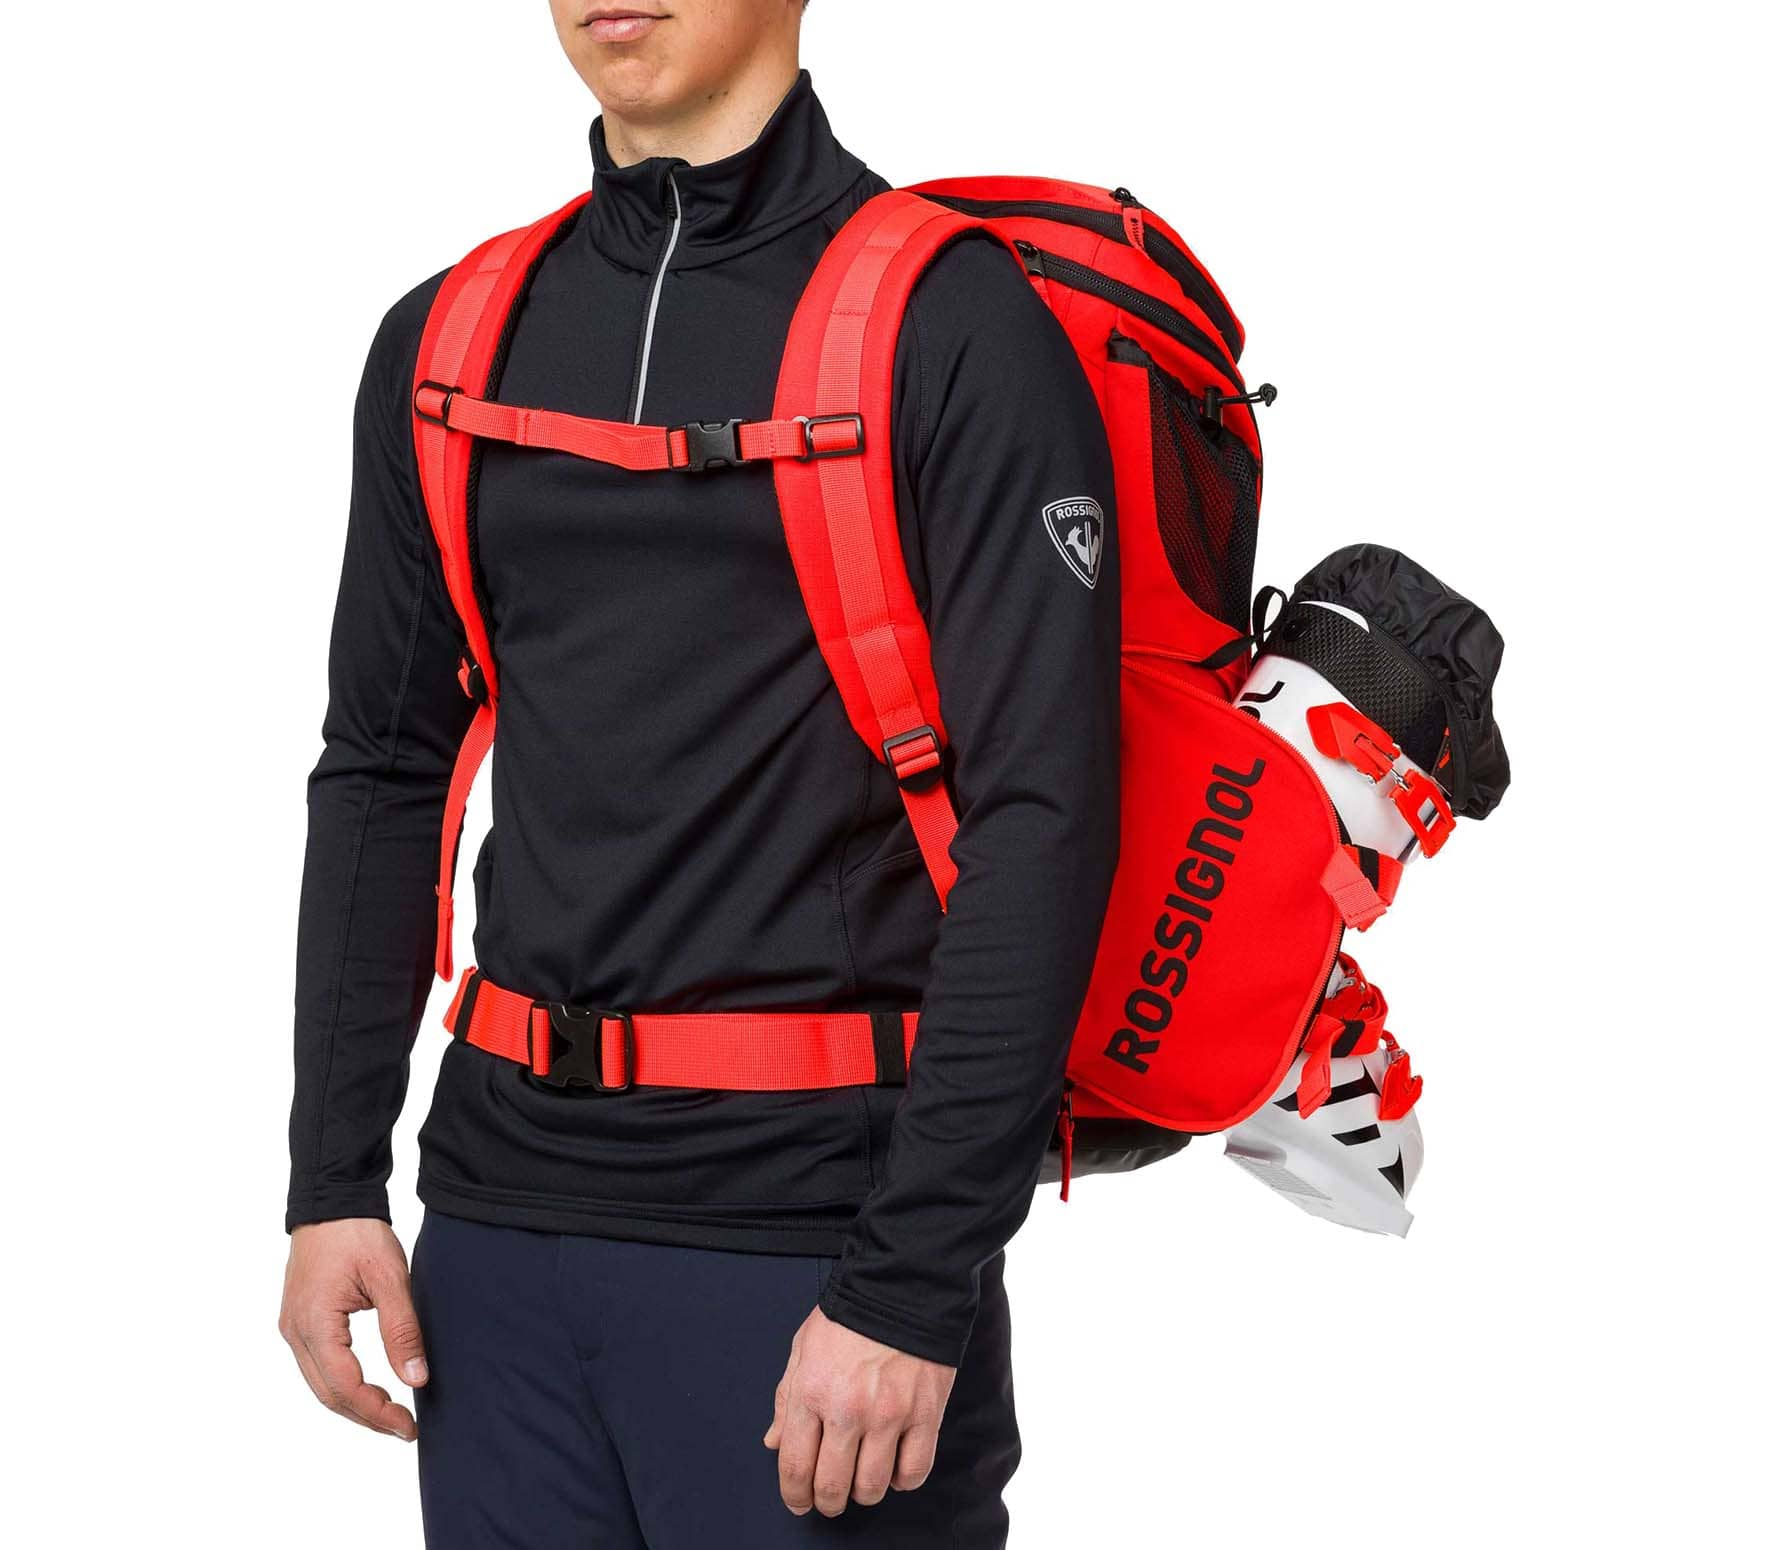 Rossignol - Hero Boot skis boot bag (red)